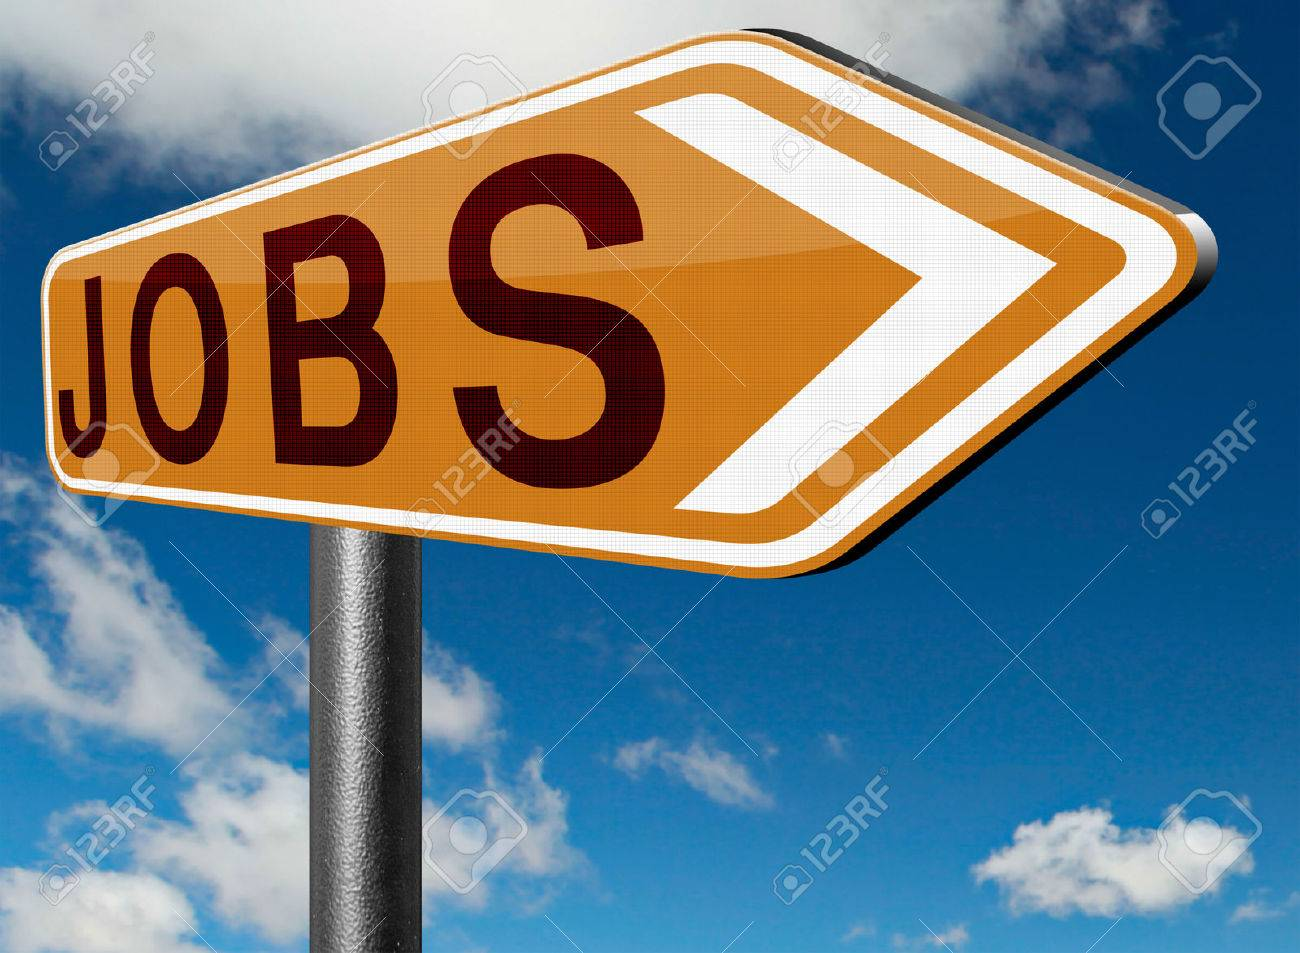 job search vacancy for jobs online career application help stock photo job search vacancy for jobs online career application help wanted hiring now ad advert advertising